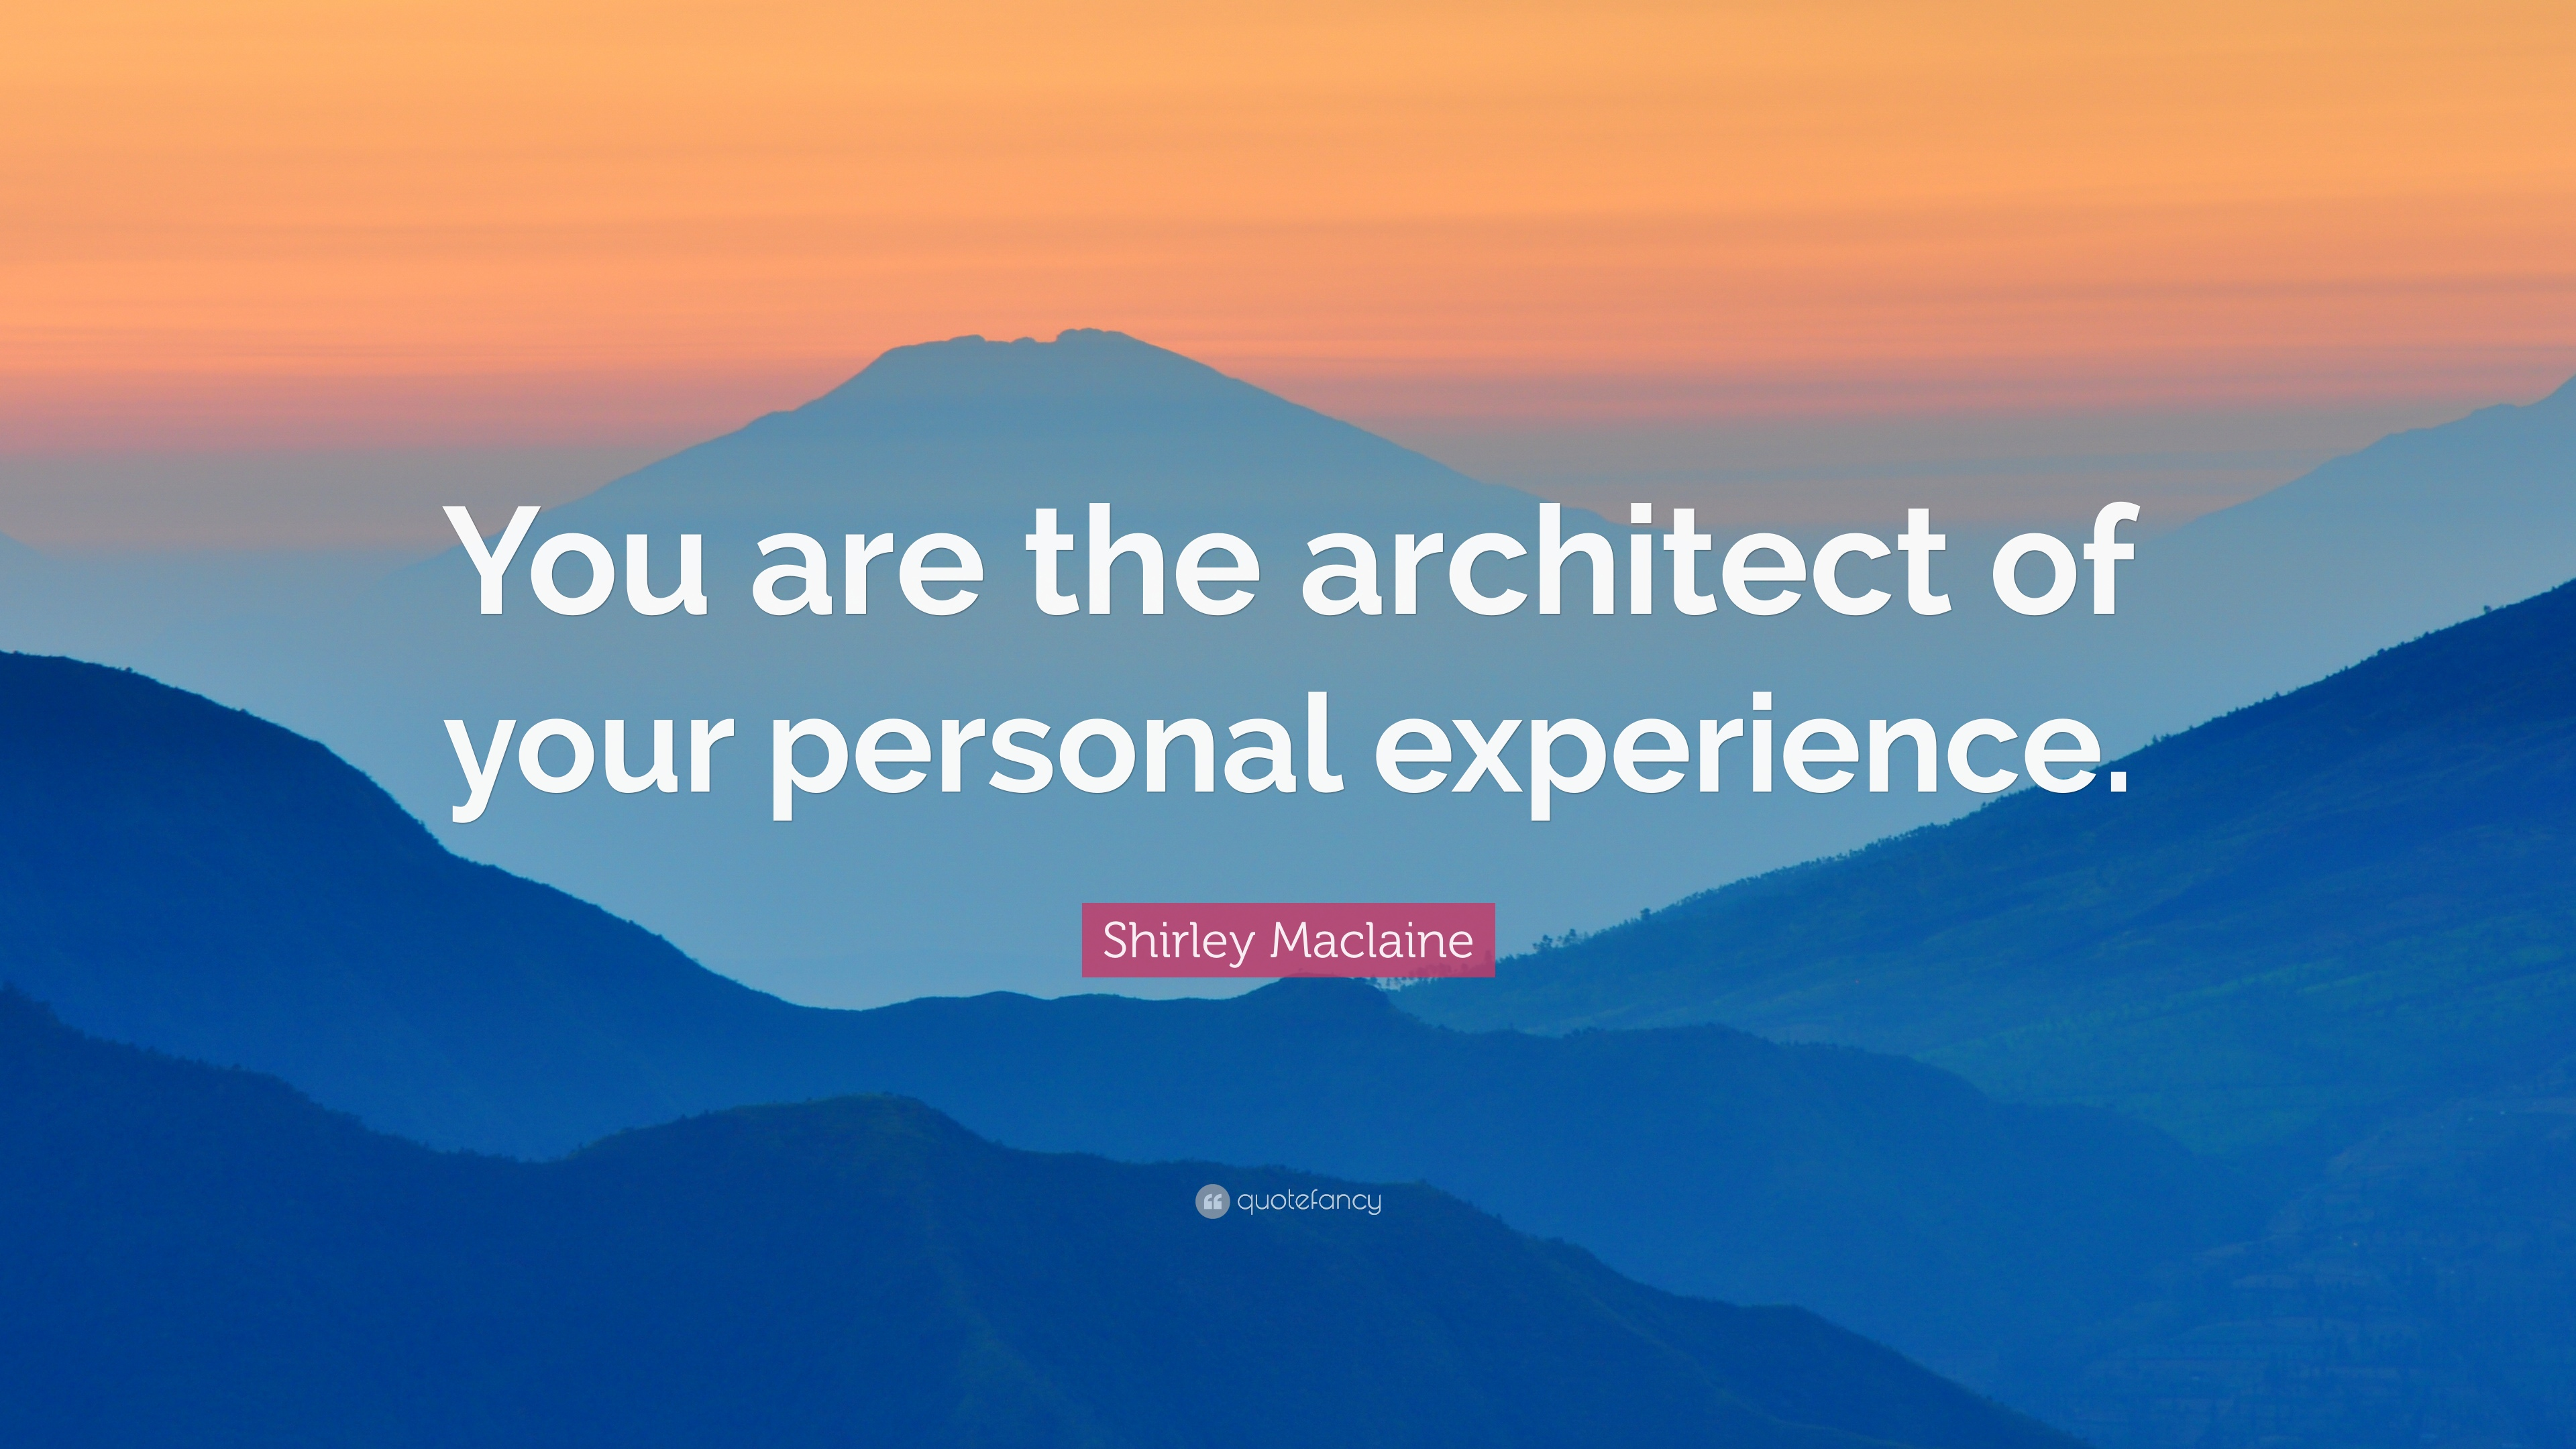 You are architect your experiences